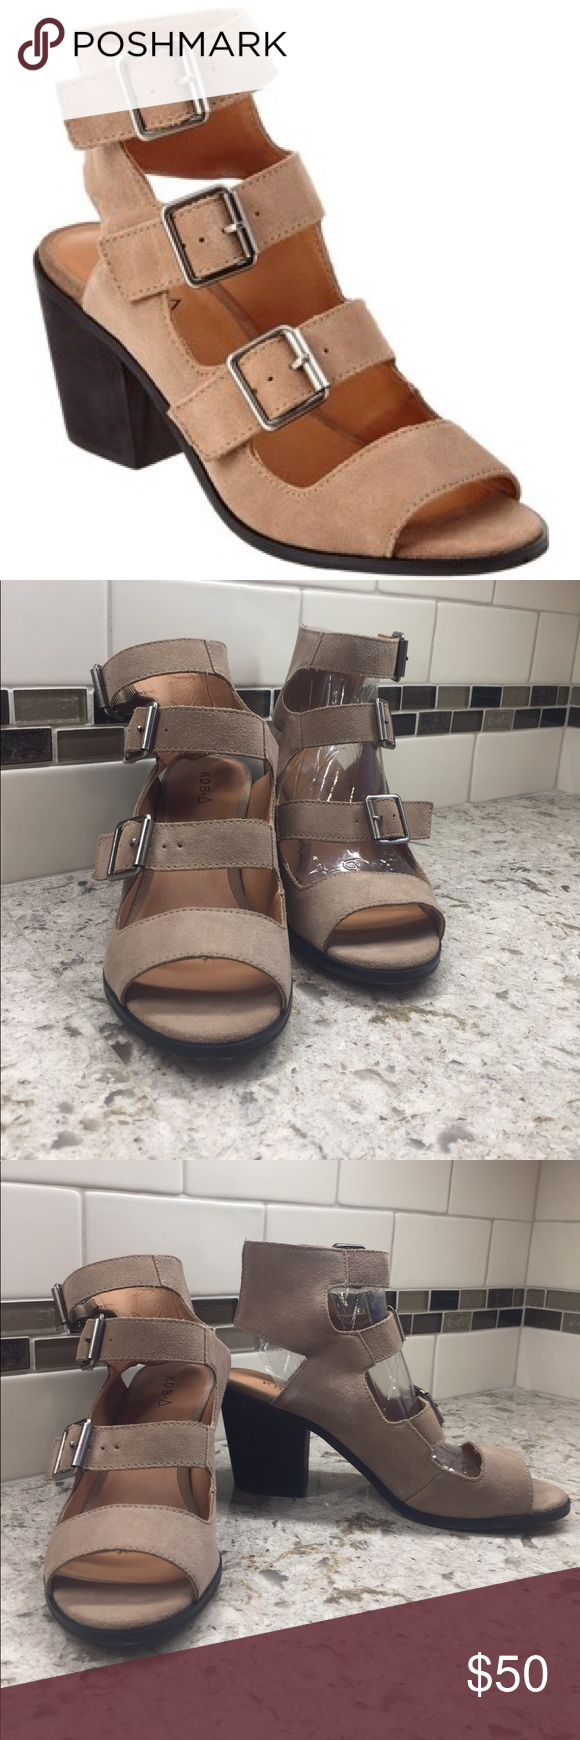 """Kelsi Dagger """"Kristie"""" suede buckle sandal New in box Taupe colored suede 3 buckle sandal. 3 inch block heel on contrasting brown  color Kelsi Dagger Shoes Sandals"""